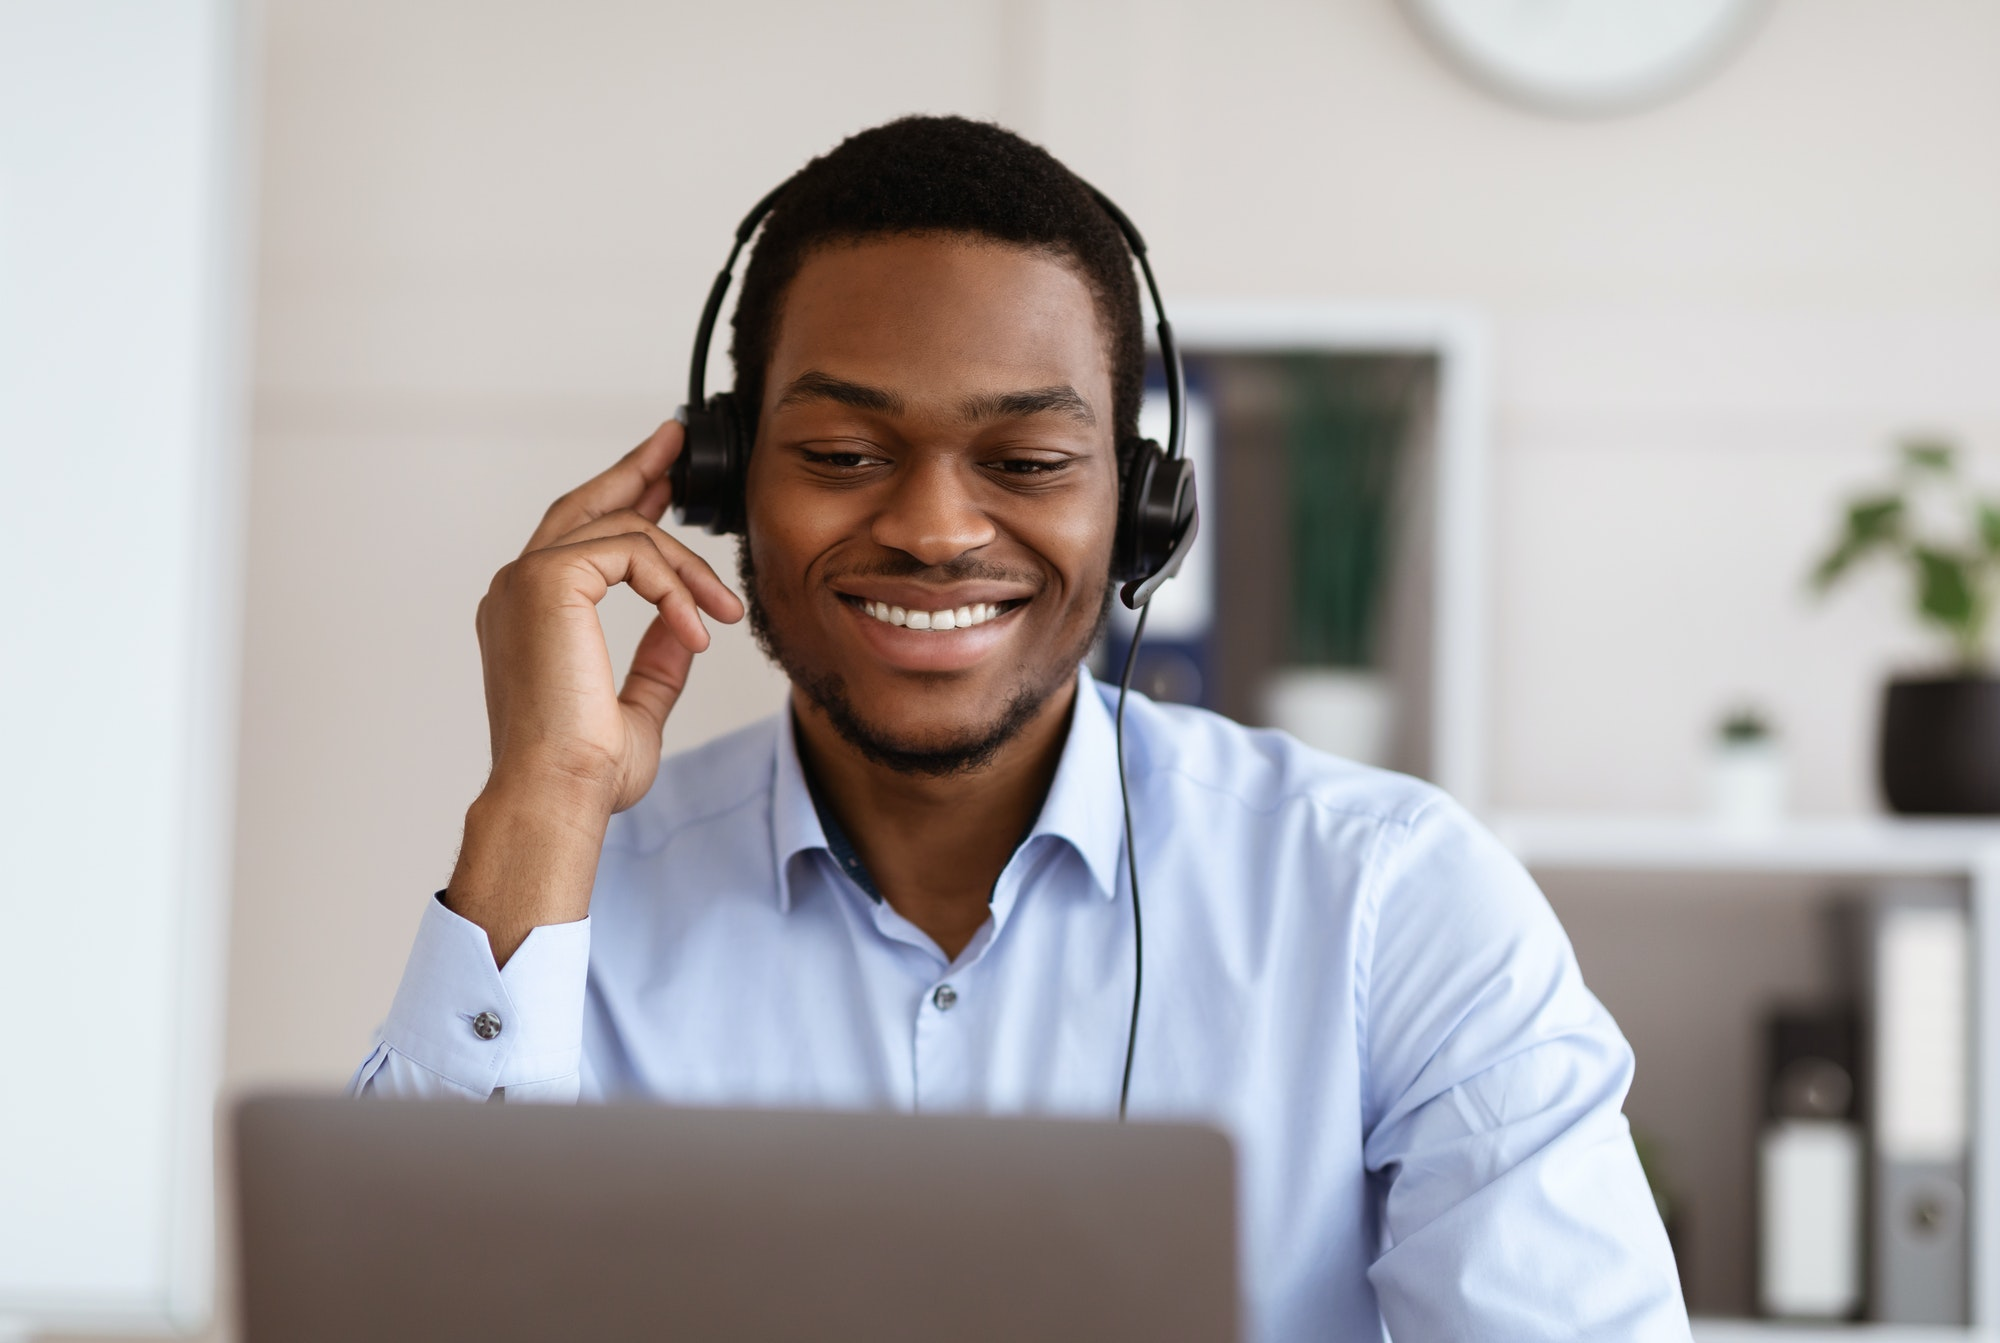 Closeup of black worker with headset using laptop, office interior